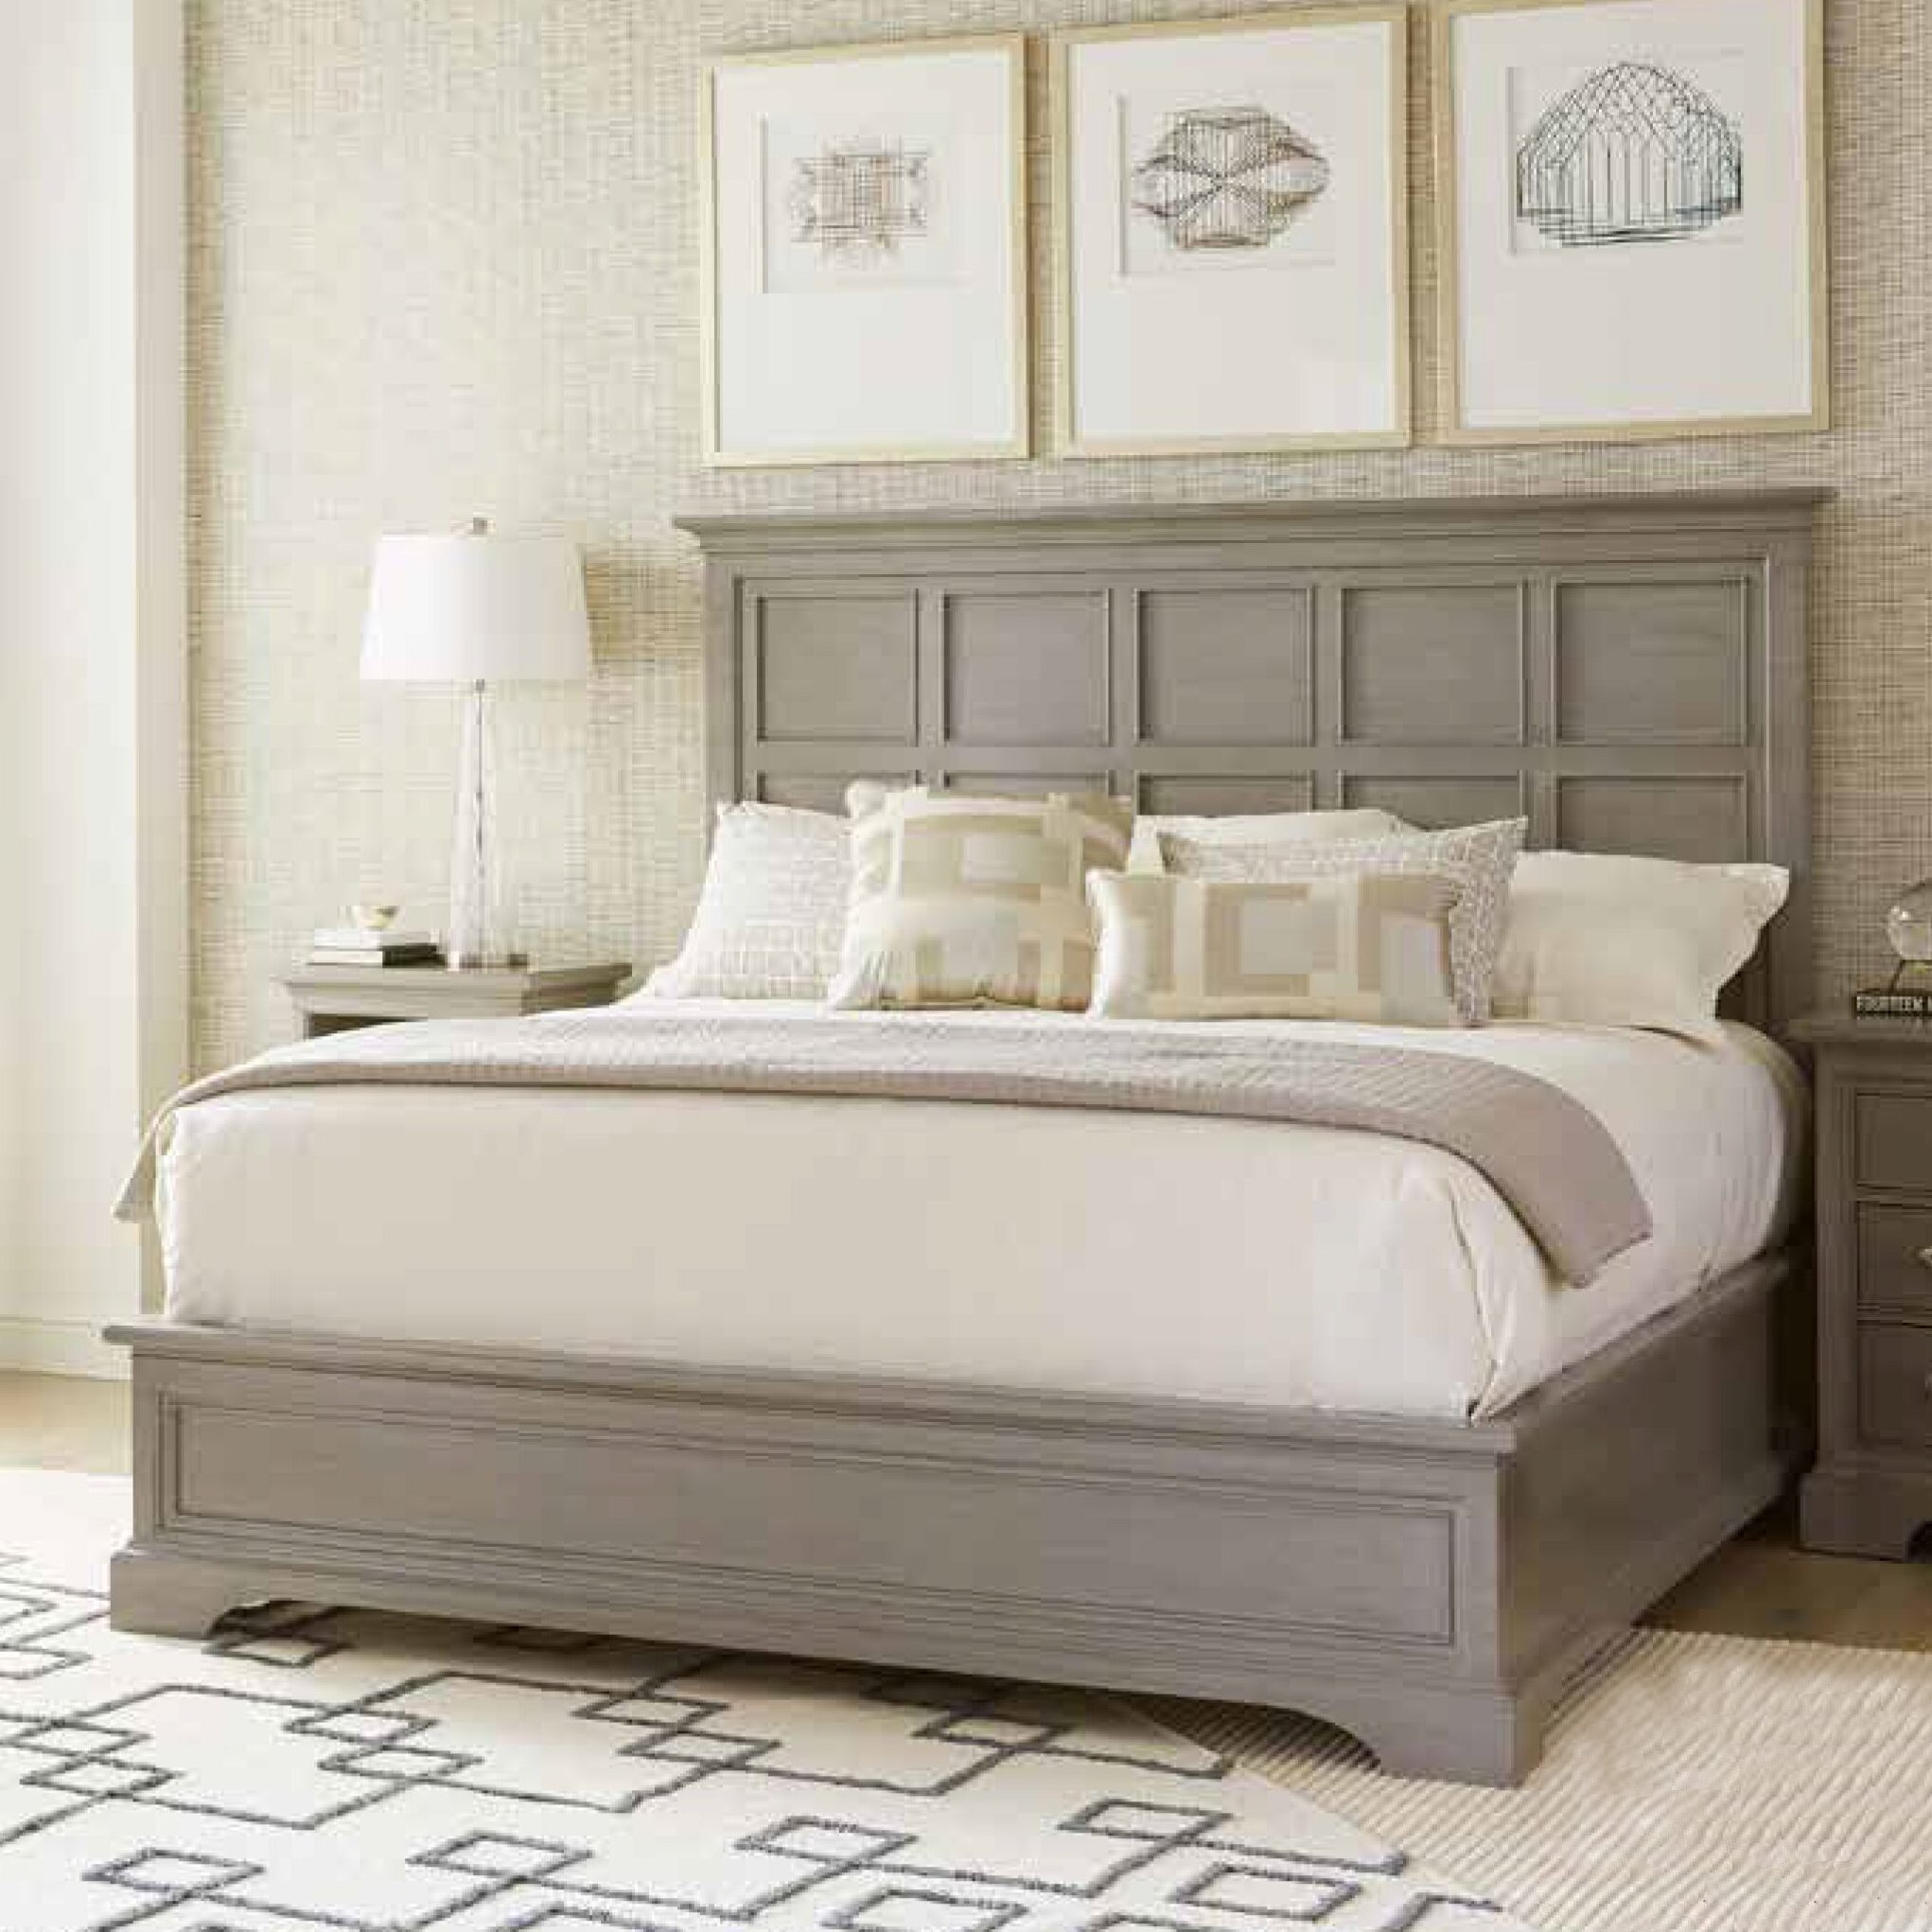 Stanley transitional panel bed reviews wayfair for Transitional bedroom furniture